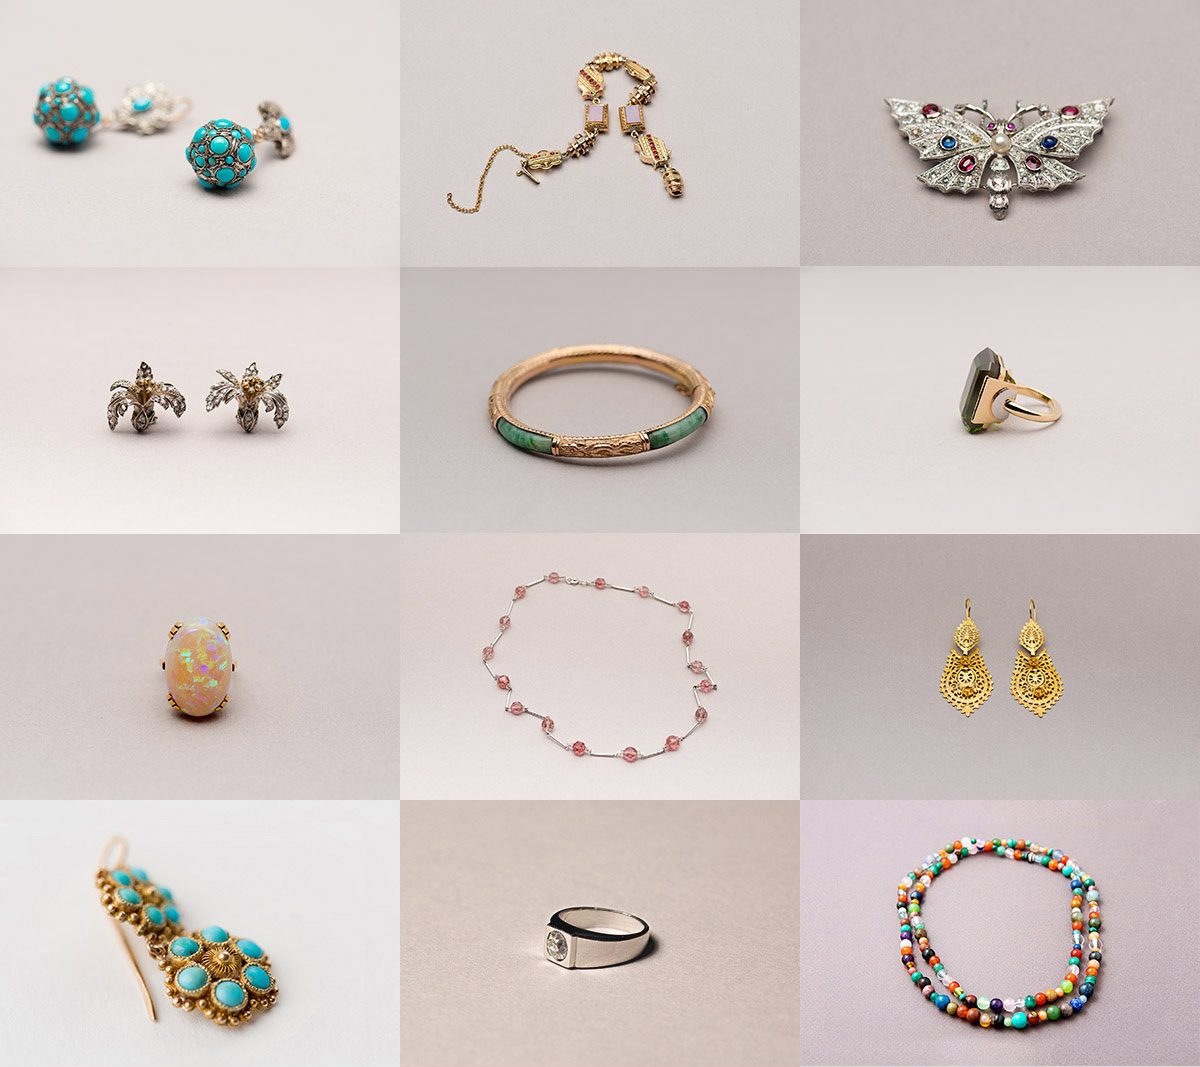 Catalogue de bijoux anciens par le photographe Arnaud Delon